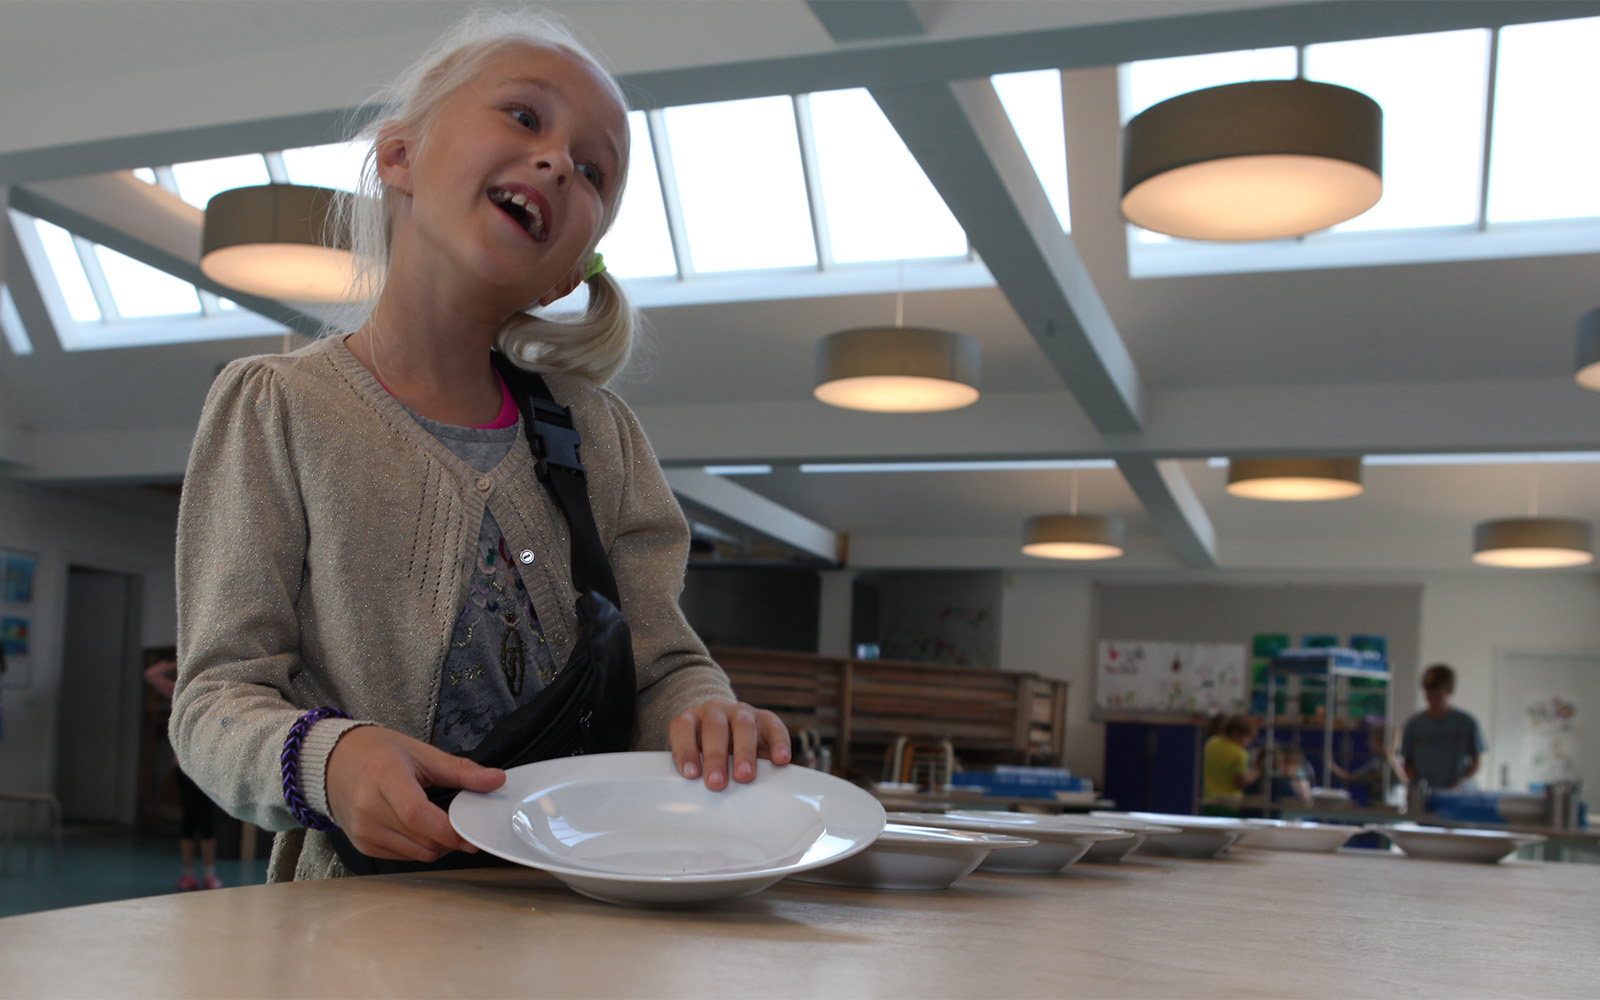 Young student in cafeteria illuminated with skylight and artificial lighting